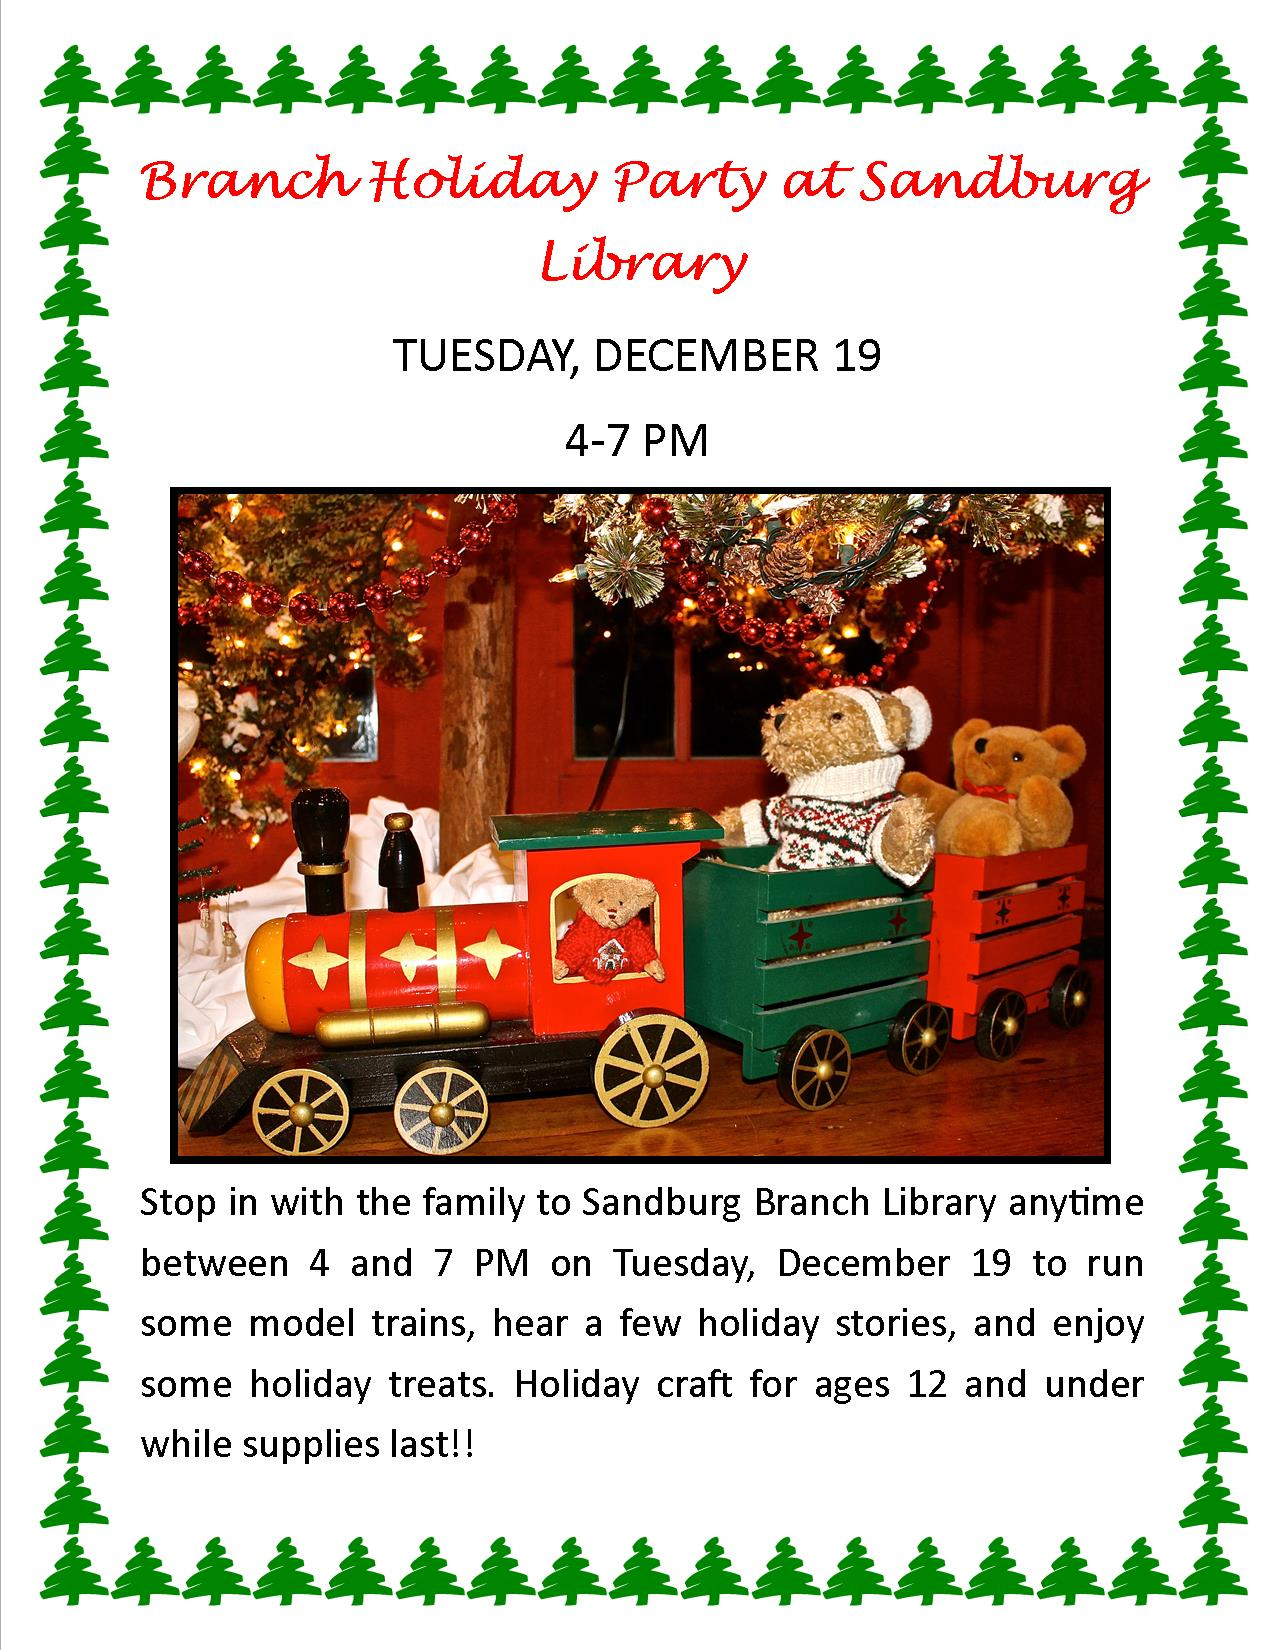 Branch Holiday Party at Sandburg Library